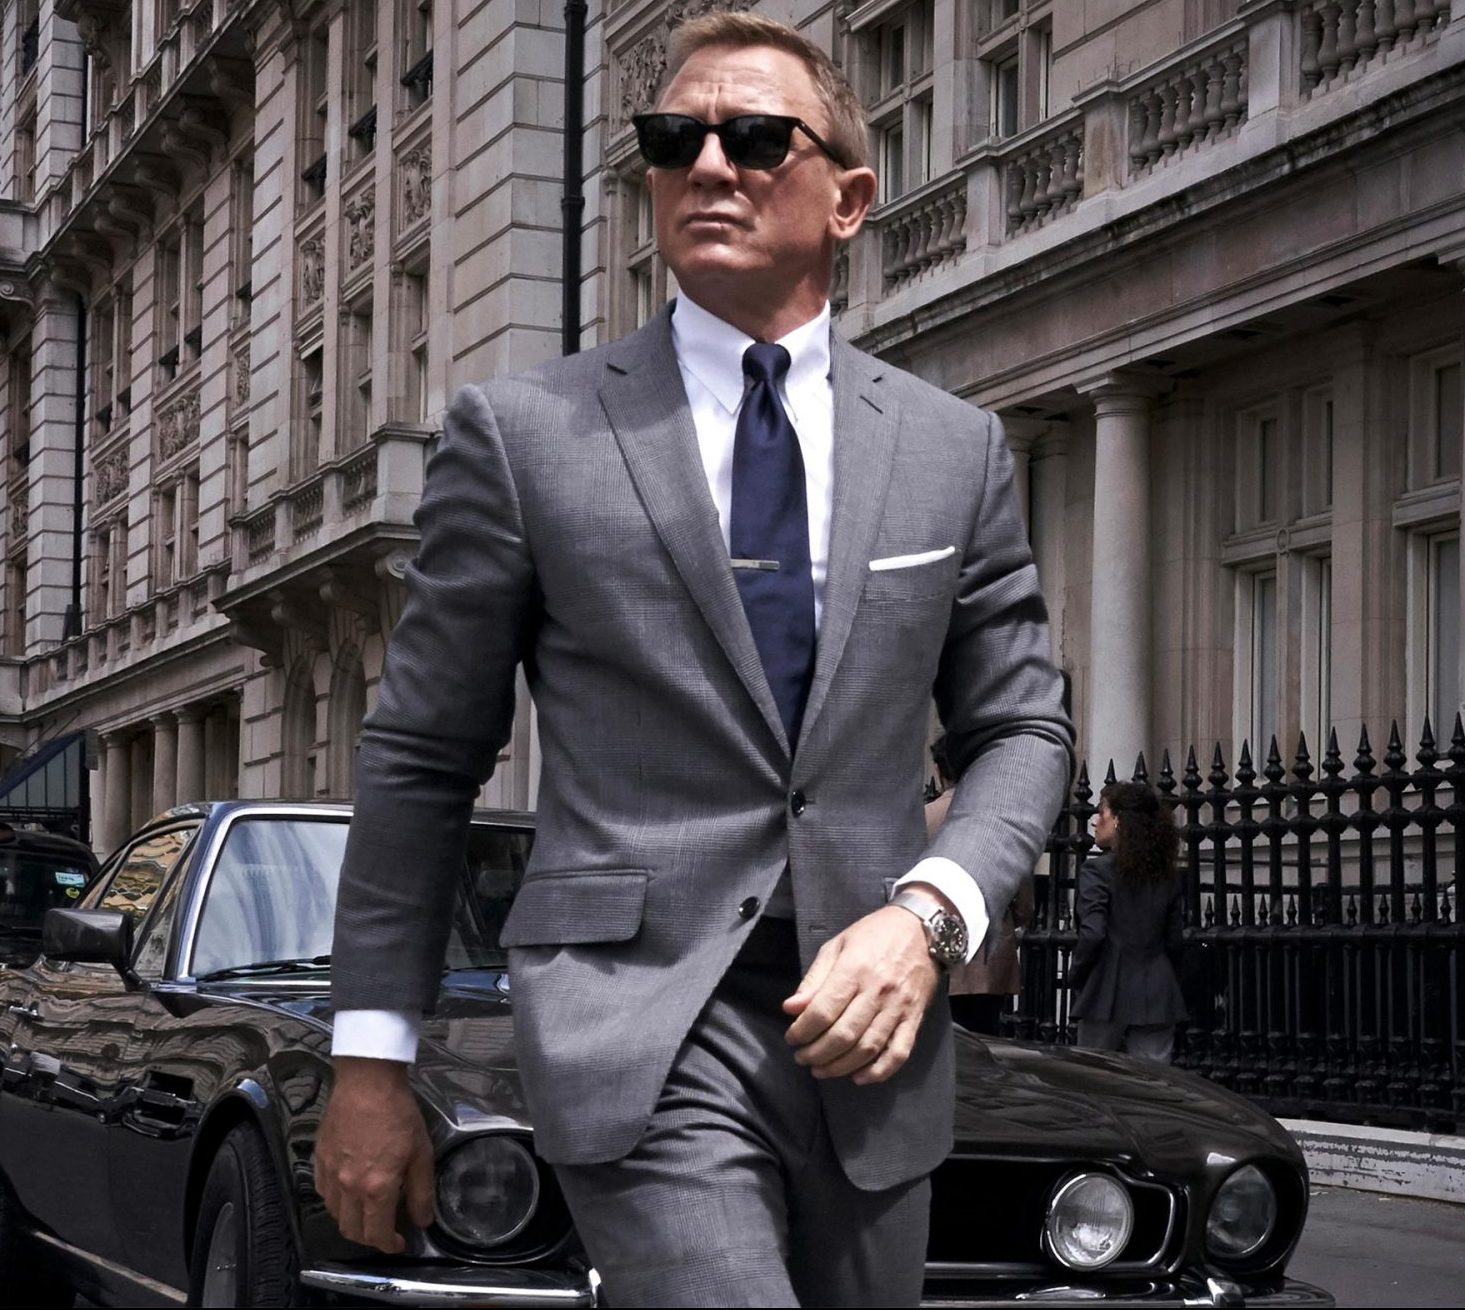 image 6 e1615376556524 30 Things You Probably Didn't Know About The James Bond Films